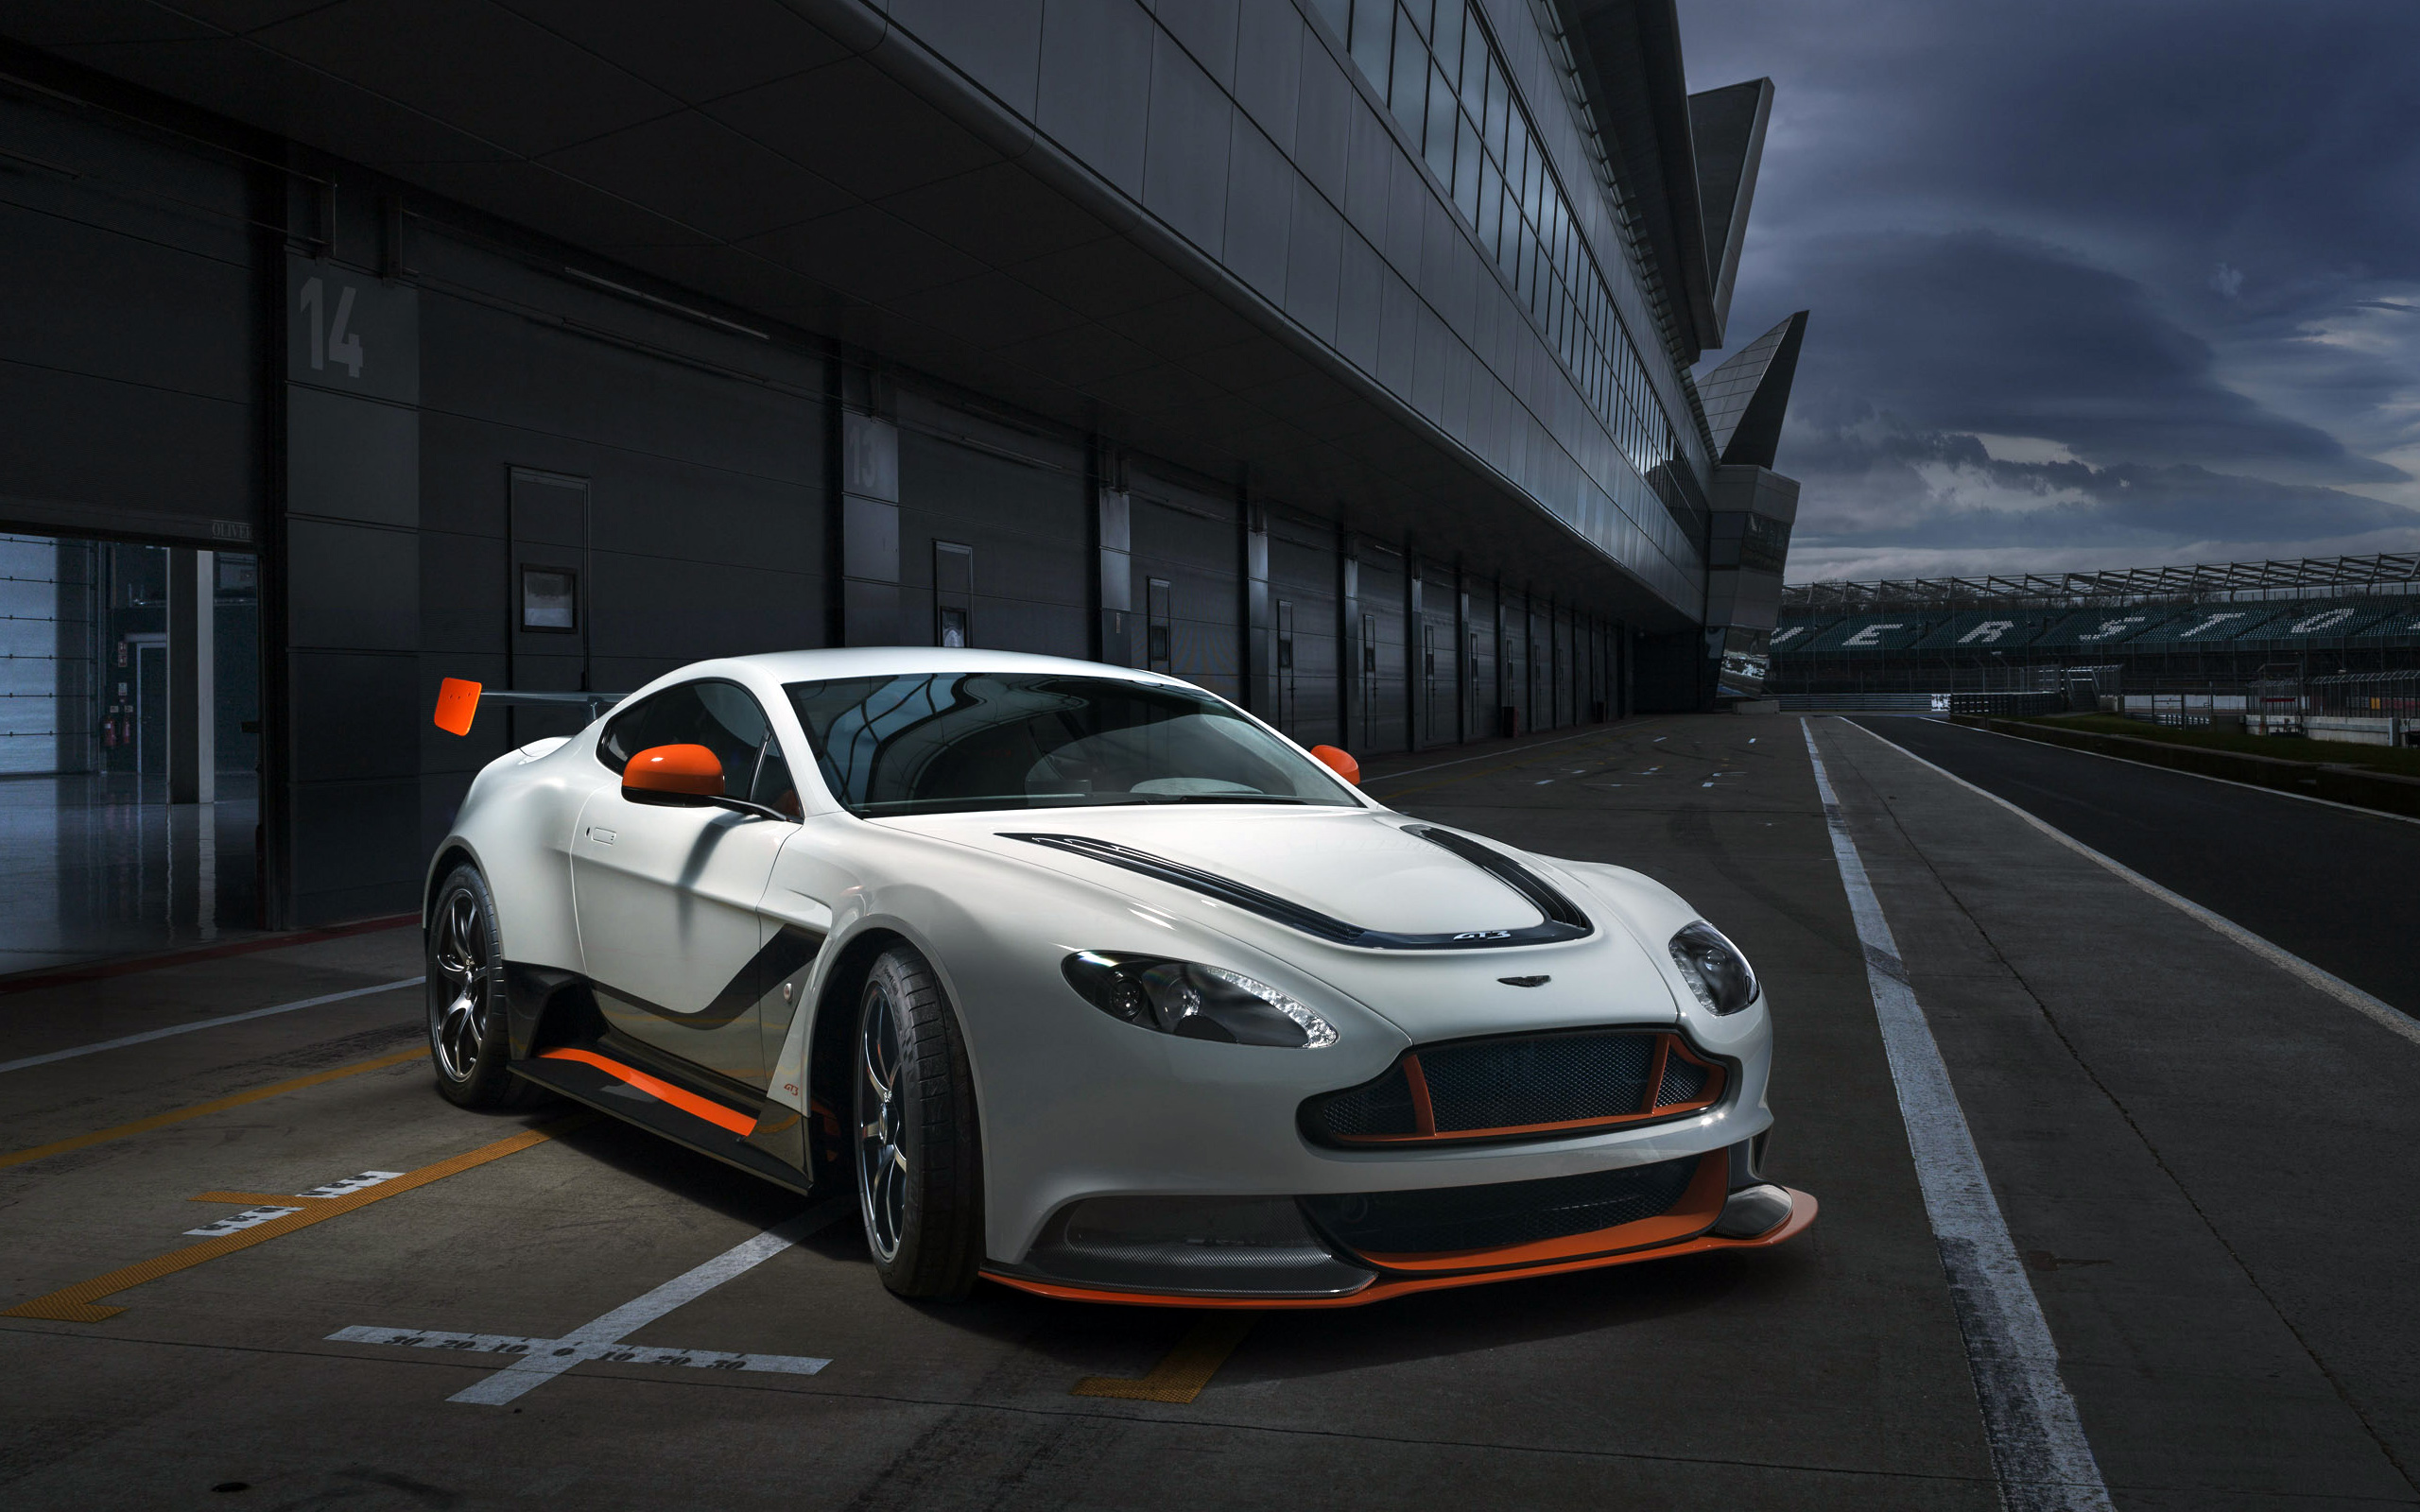 Aston Martin Full HD Wallpapers